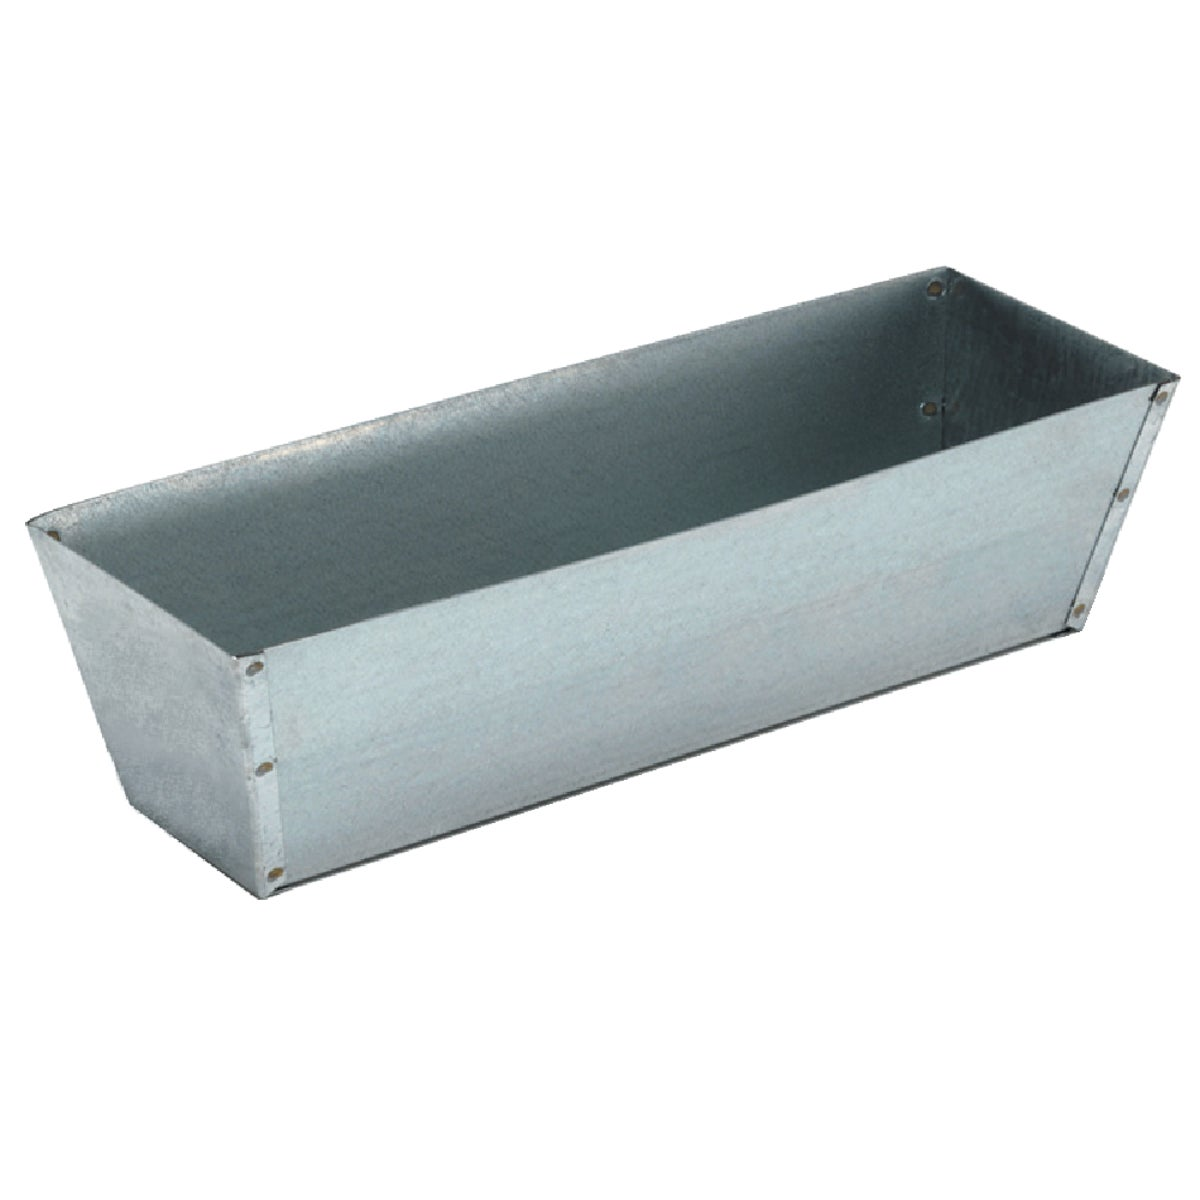 "14"" GALVANIZED MUD PAN"